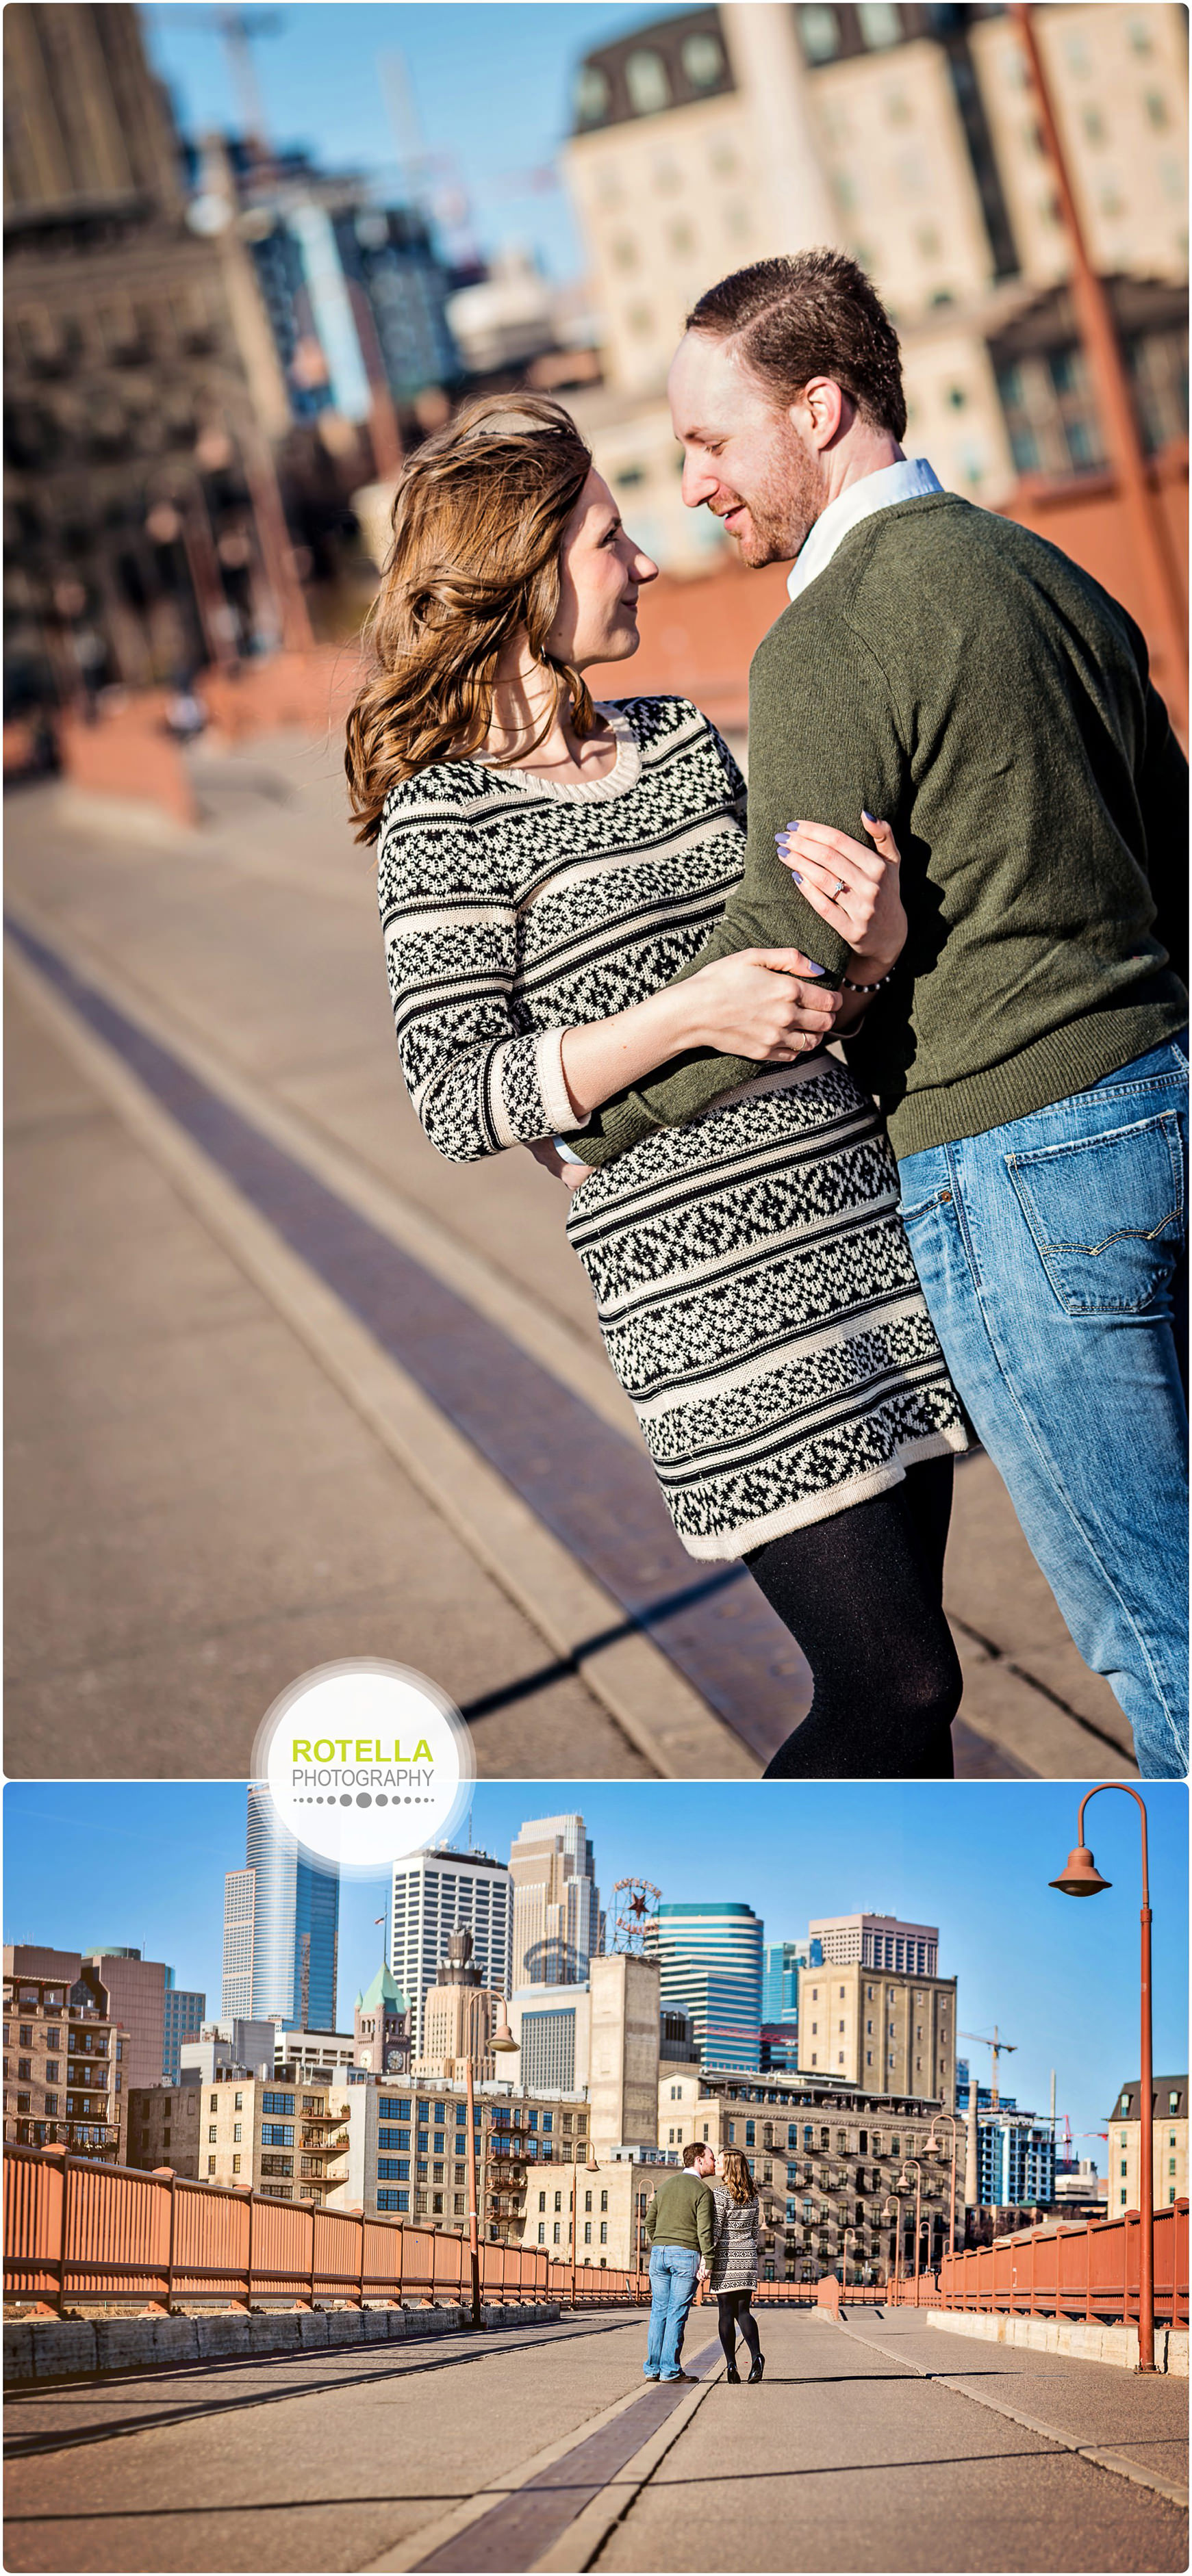 A-A-Minneapolis-Engagement-Photography-Rotella-Photography-2015_0004